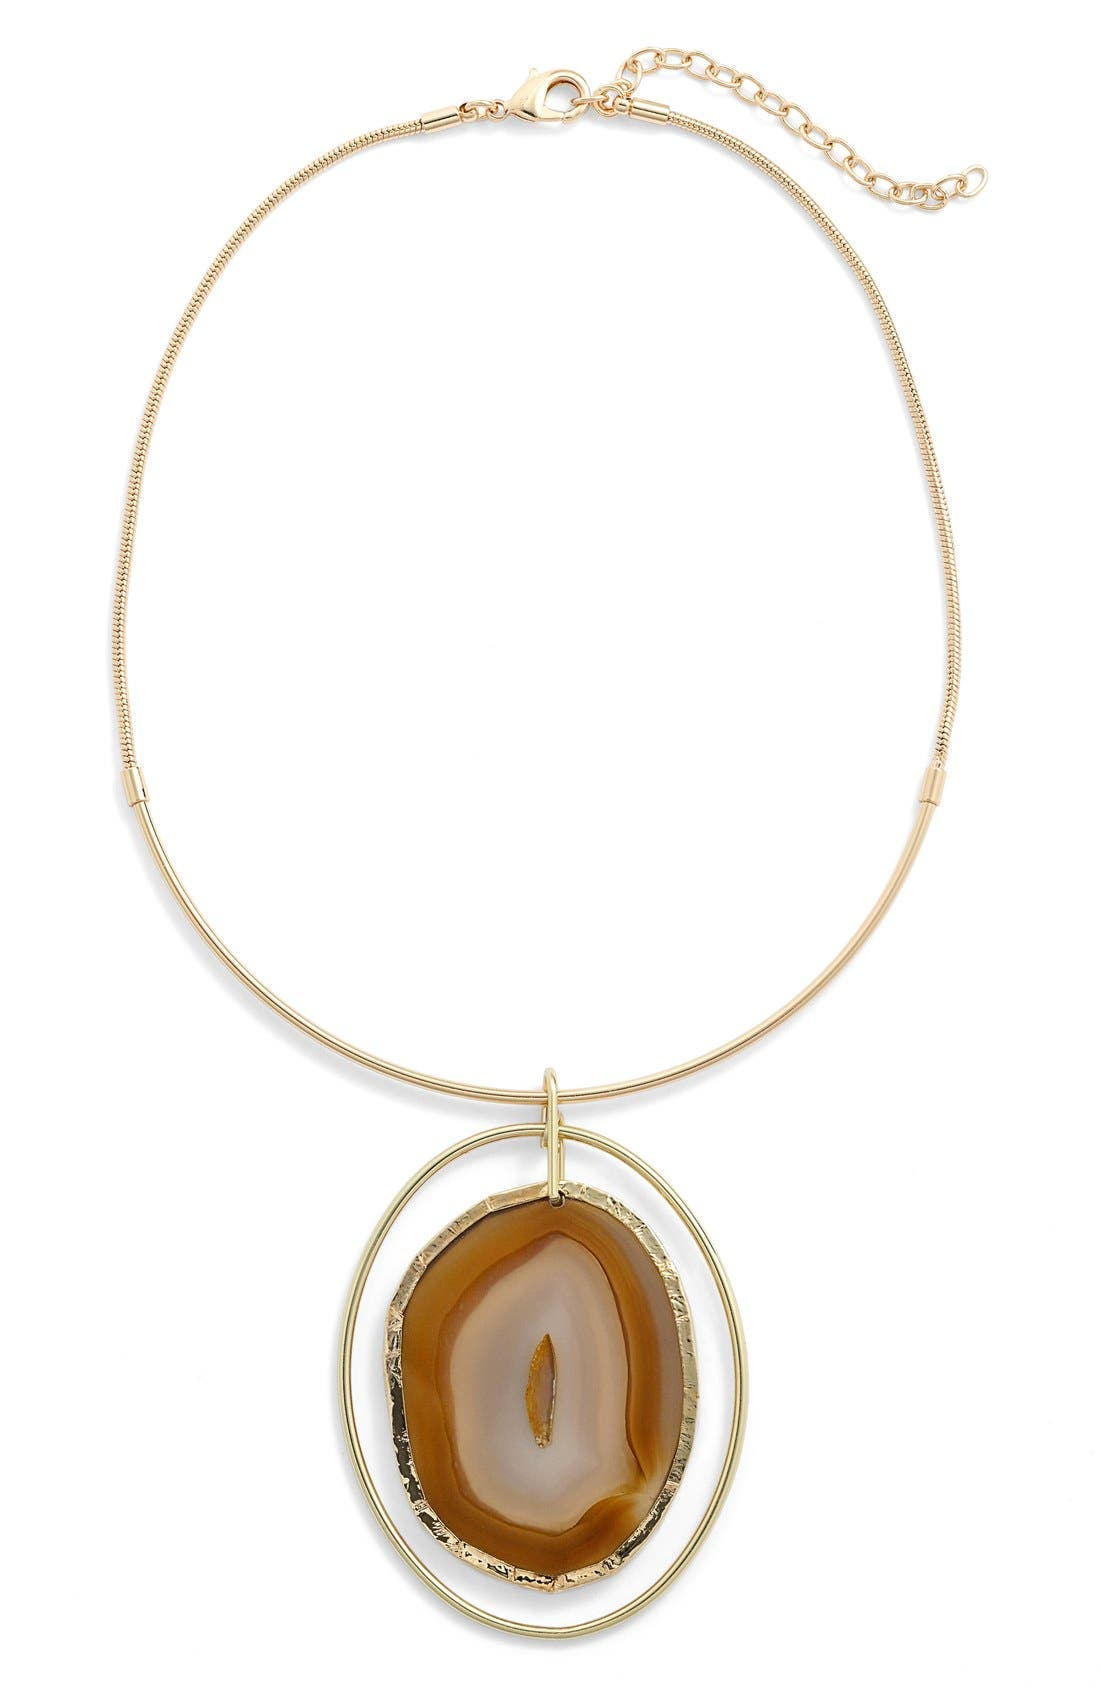 Alternate Image 1 Selected - Nordstrom Agate Collar Necklace